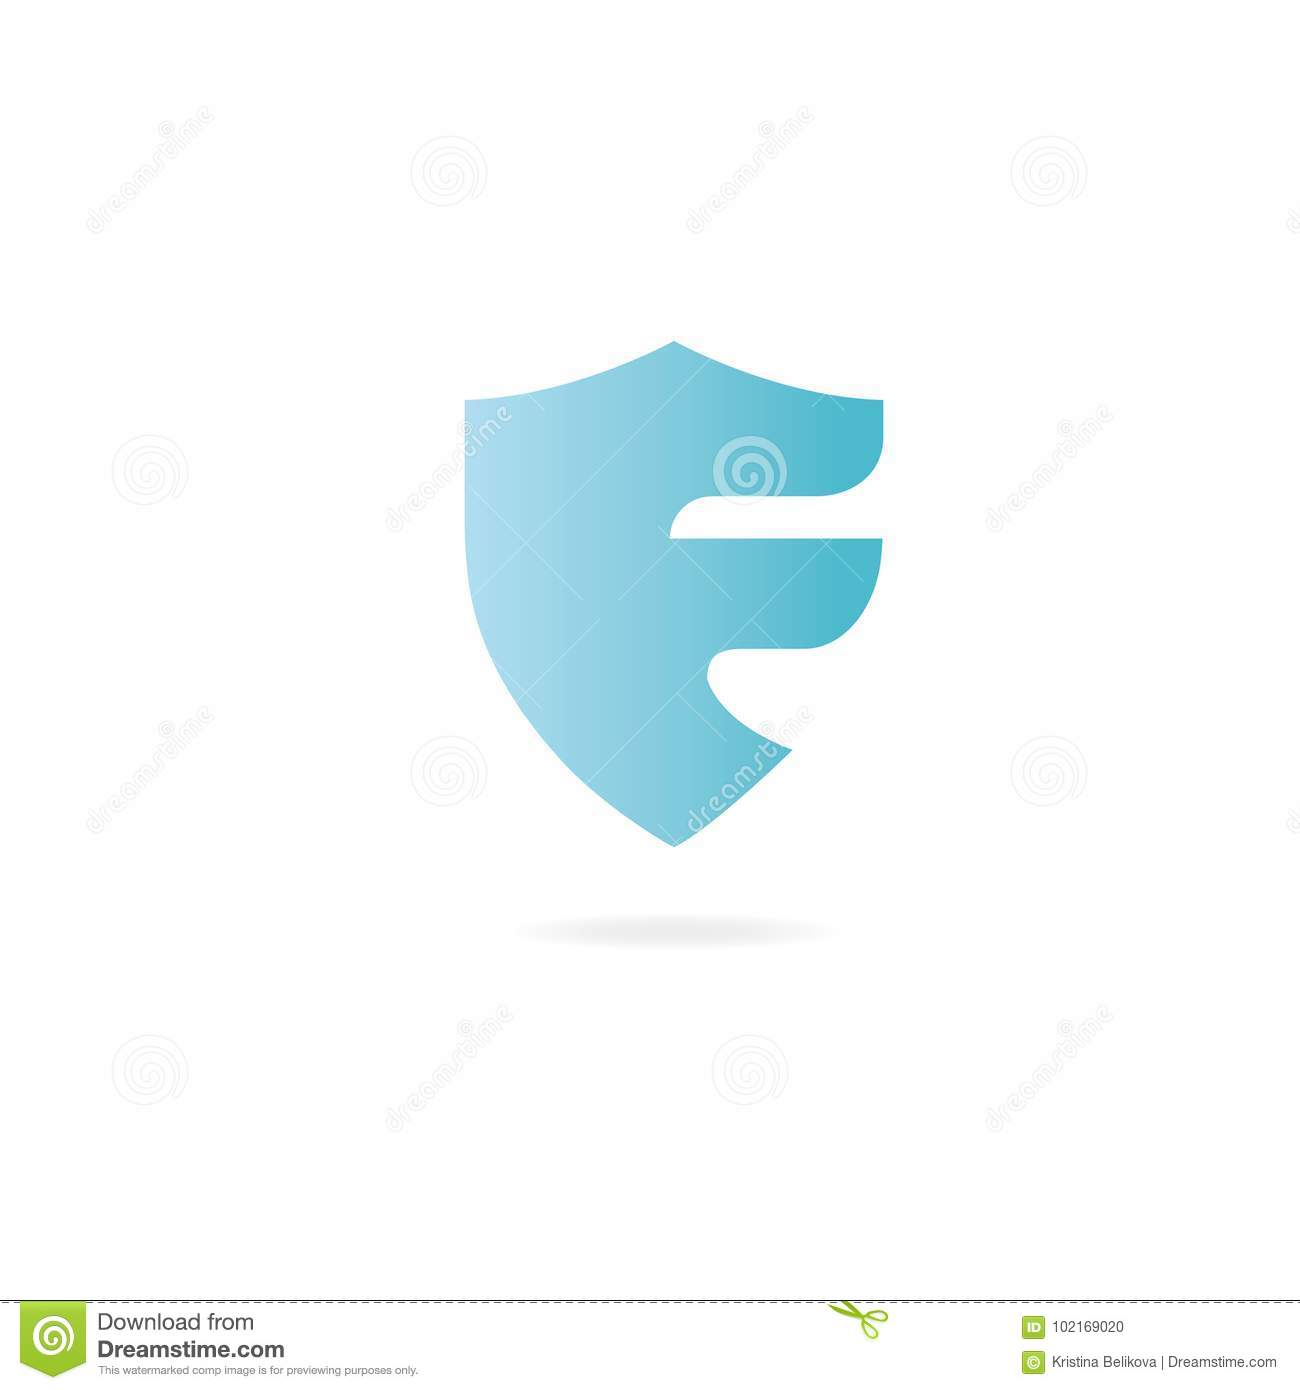 letter f logo design template elements protection shield